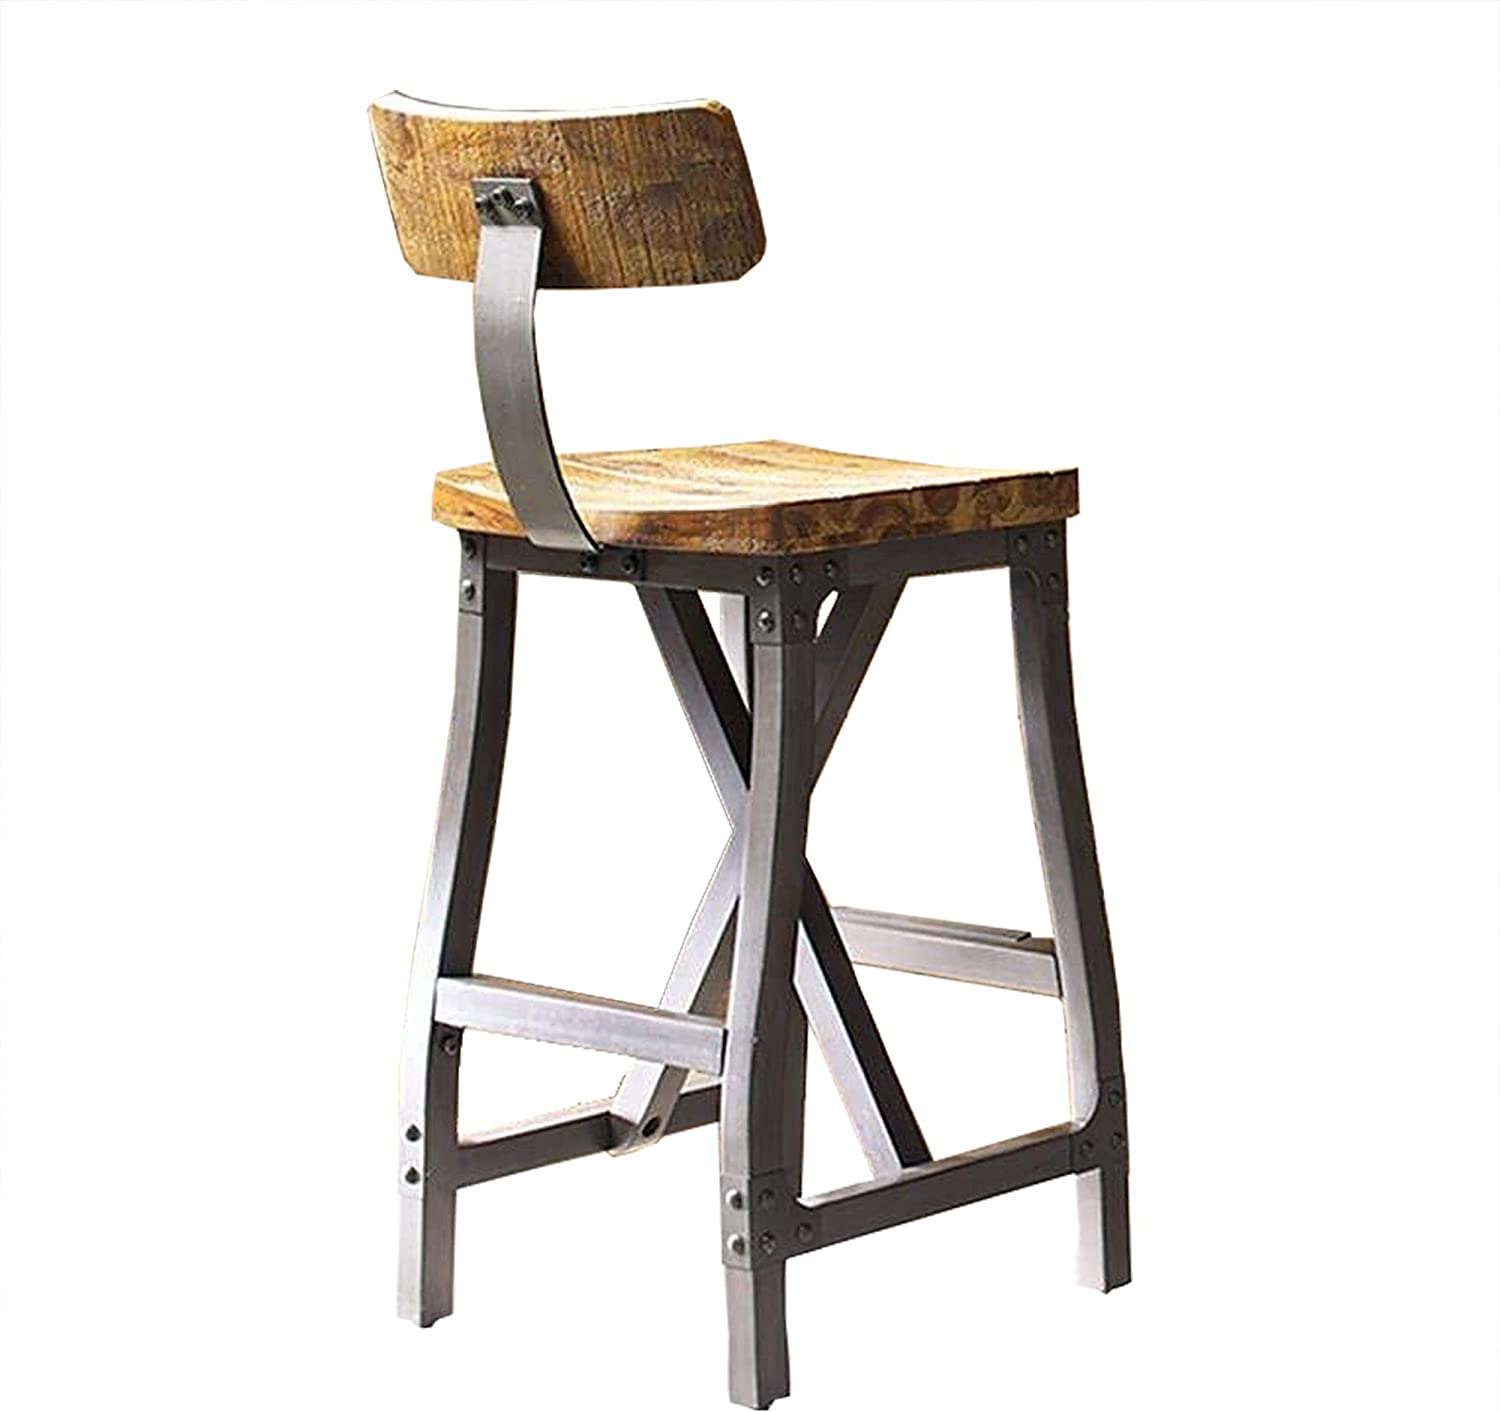 Amazon.com: Ink+Ivy Lancaster Bar Stools, Contour Wood Seat, Removable Backest Modern Industrial Bar-Height Kitchen Chair, Solid Hardwood, Metal Kickplate Footrest, Dining Room Accent Furniture, Amber: Home & Kitchen